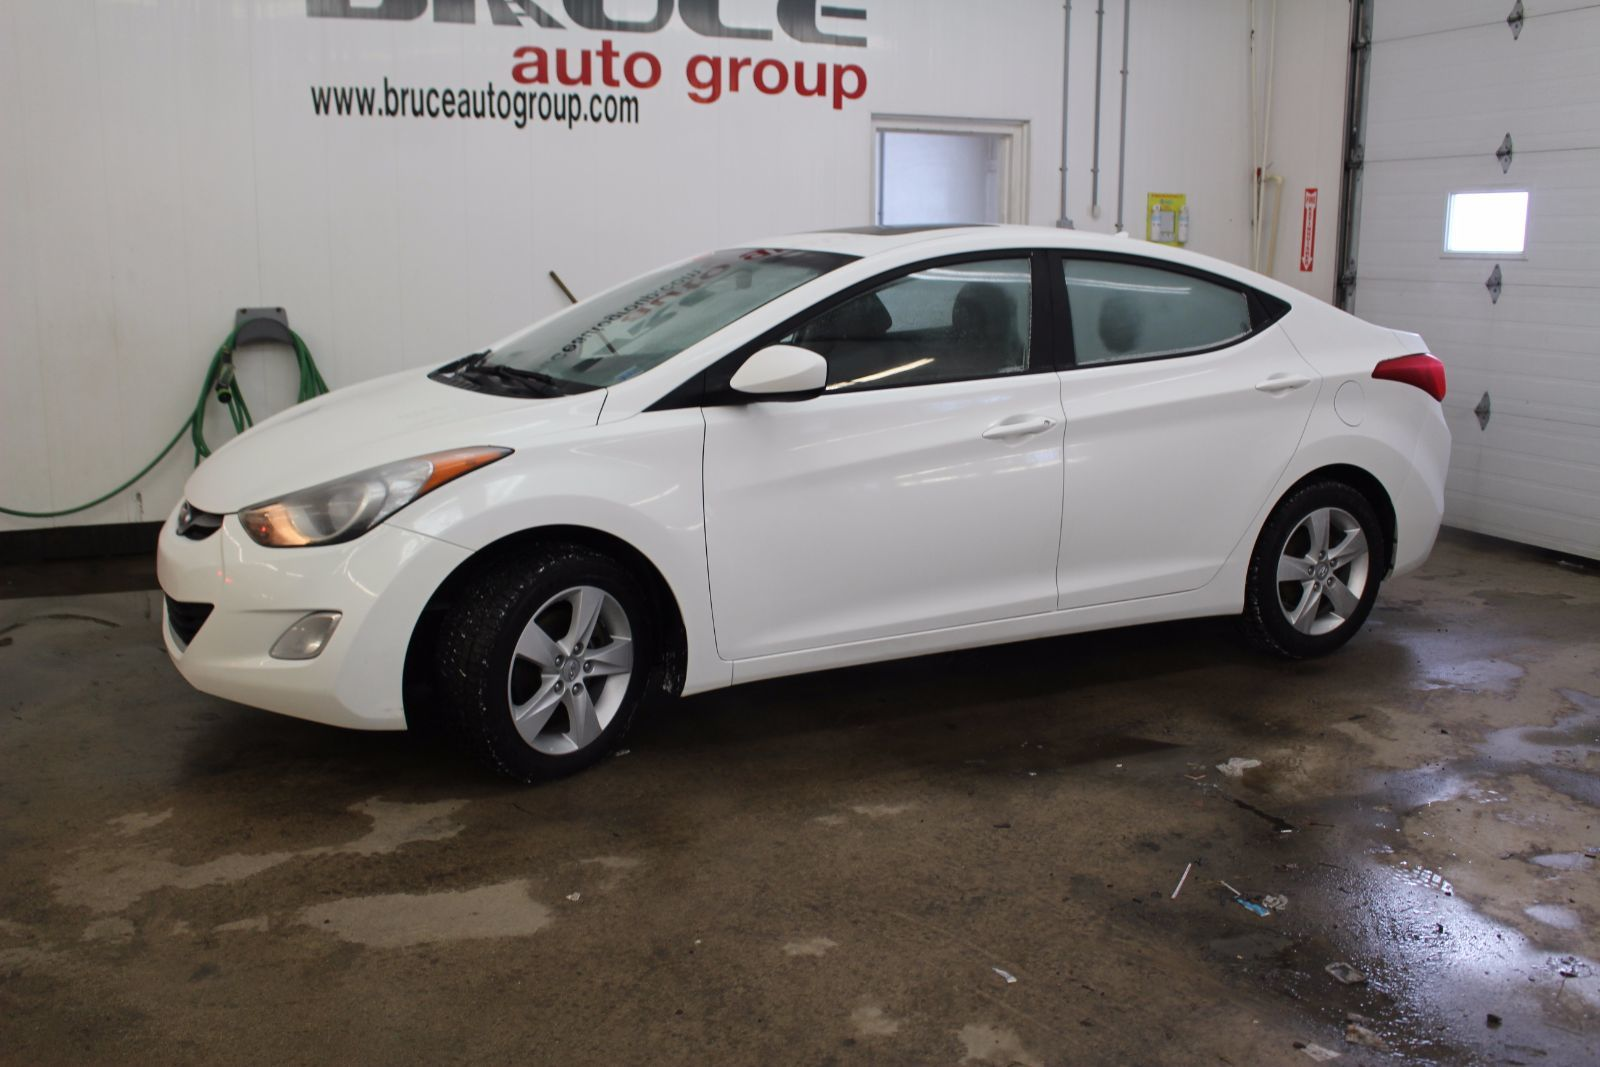 2011 hyundai elantra gls 1 8l 4 cyl automatic fwd 4d sedan for sale pre owned bruce ford in. Black Bedroom Furniture Sets. Home Design Ideas